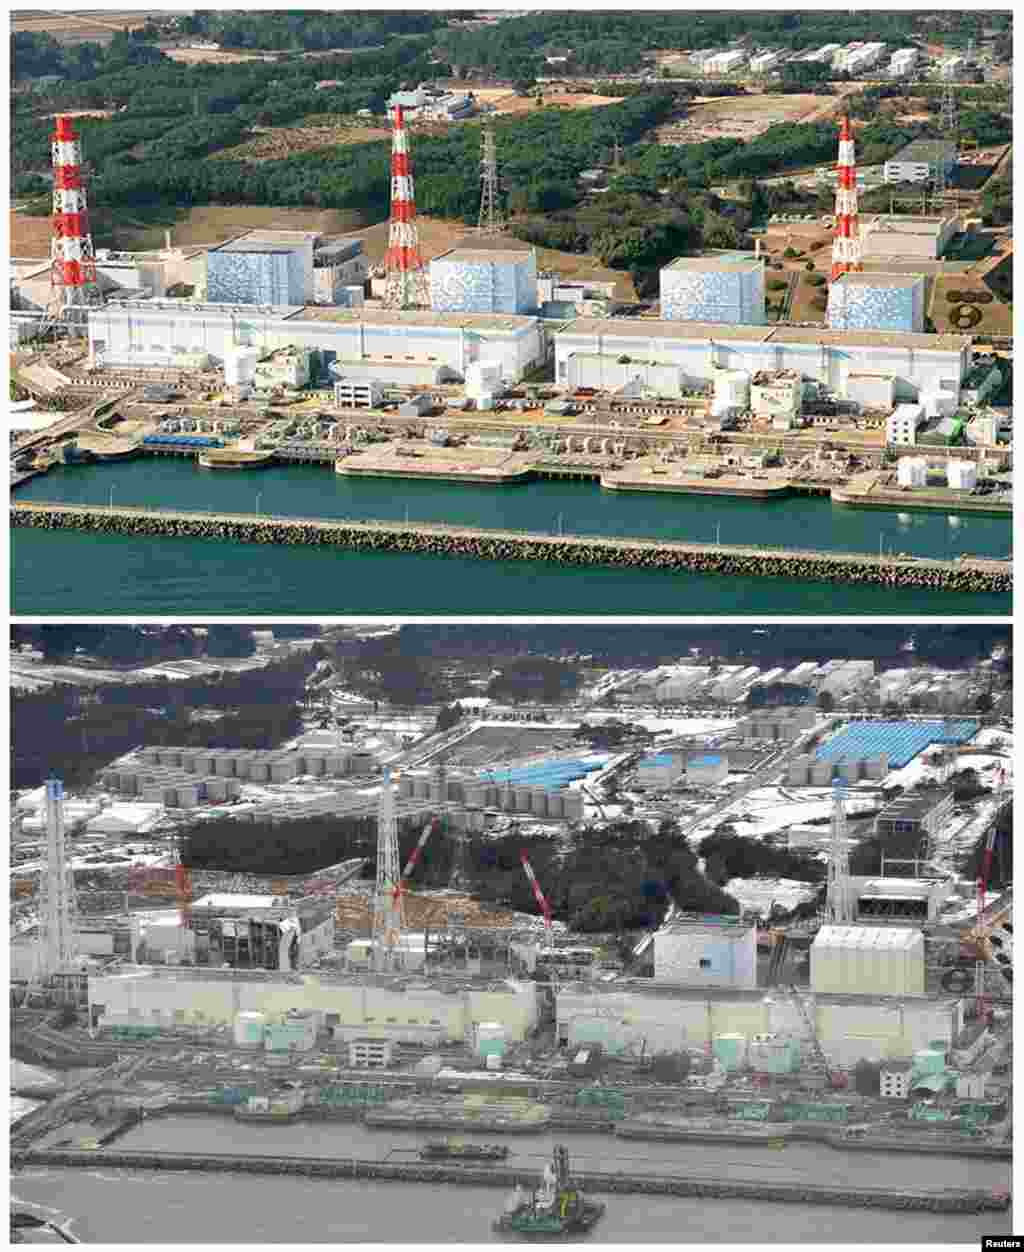 On top, the Fukushima Daiichi nuclear power plant in Fukushima Prefecture in December 2000, and below on February 26, 2012